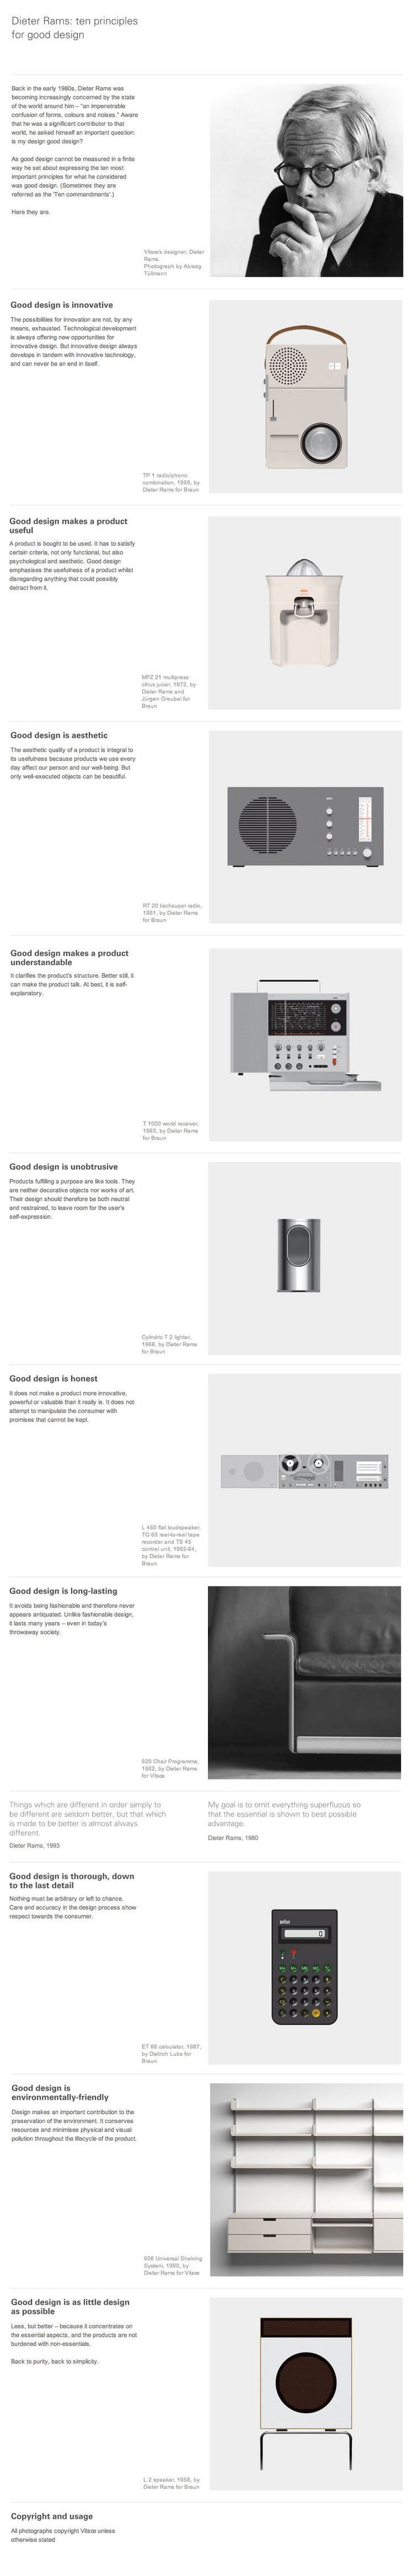 10 principlesDieter Rams,  Internet Site,  Website, Deiter Rams, Web Site, 10 Principles, Brown Design, Products Design, Industrial Design